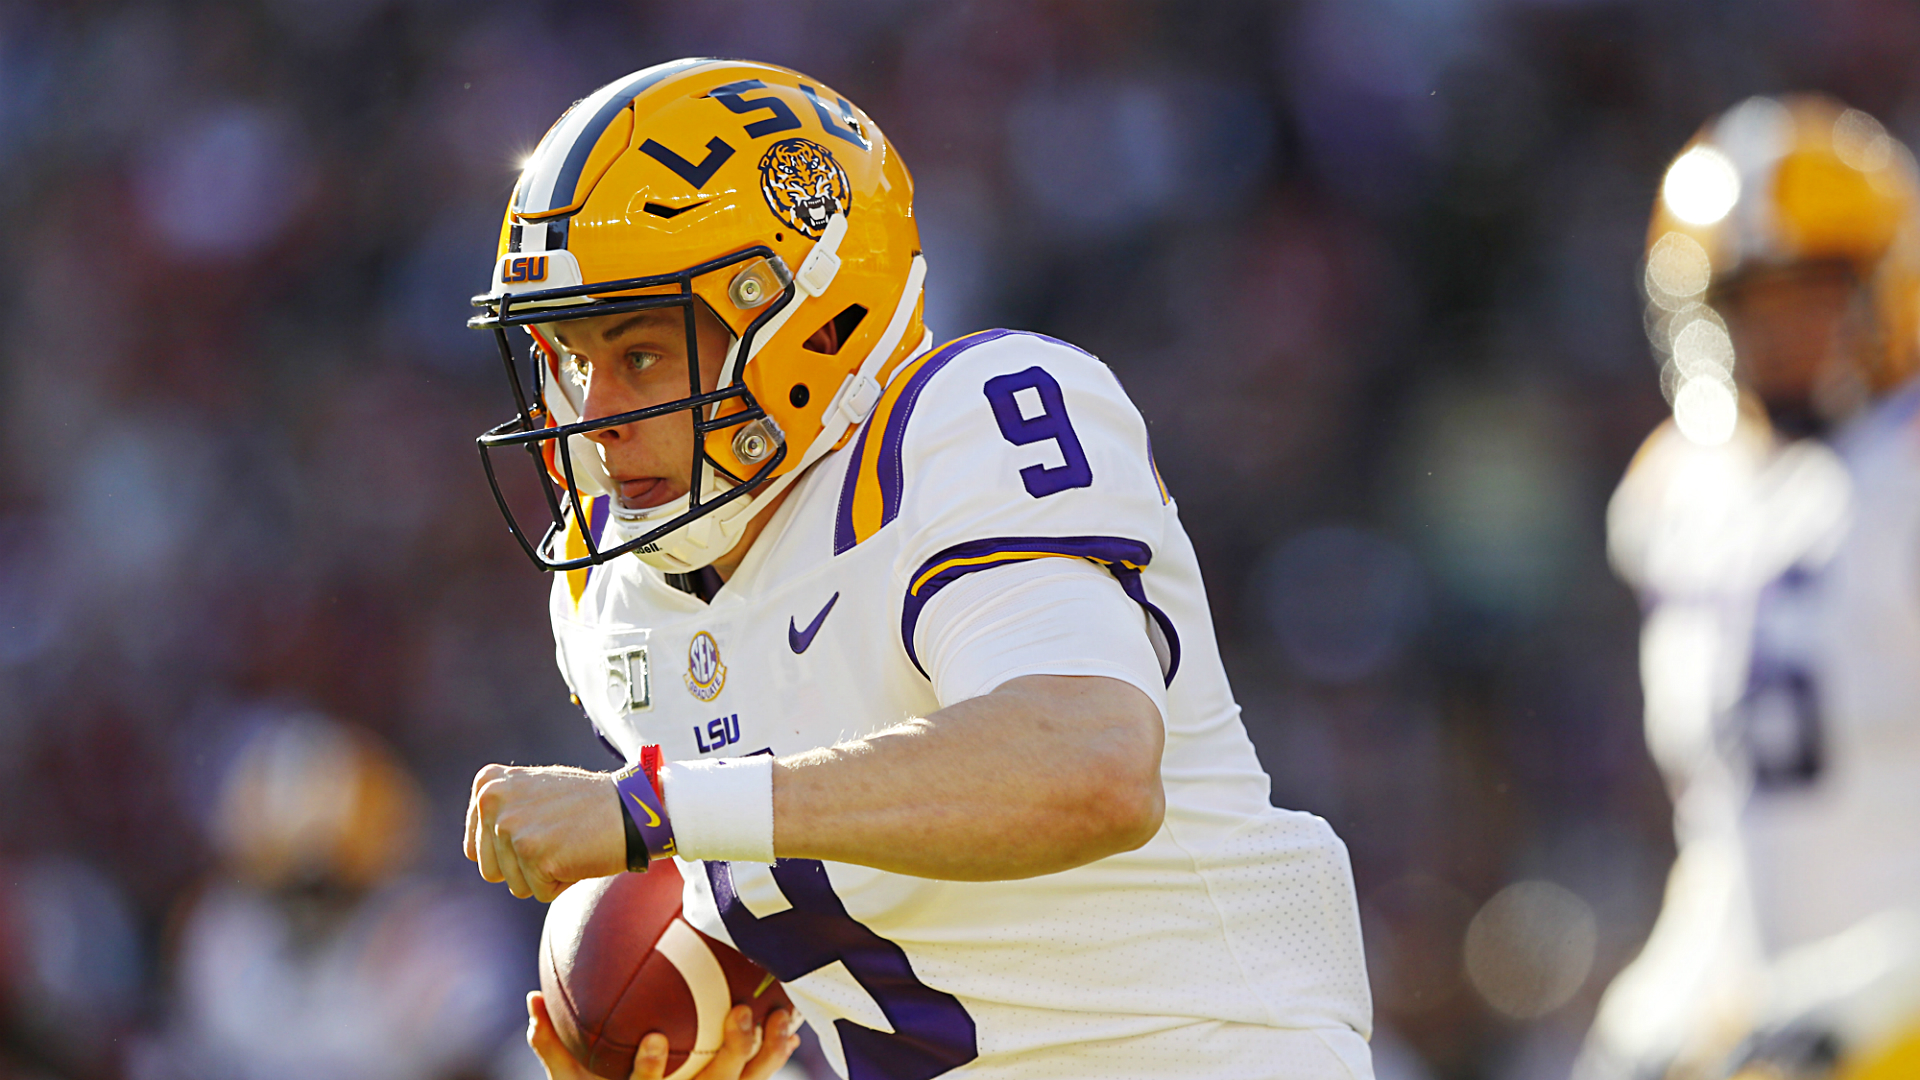 Alabama Vs Lsu Final Score Tigers Down Tide In Game Worthy Of Game Of The Century Moniker Sporting News